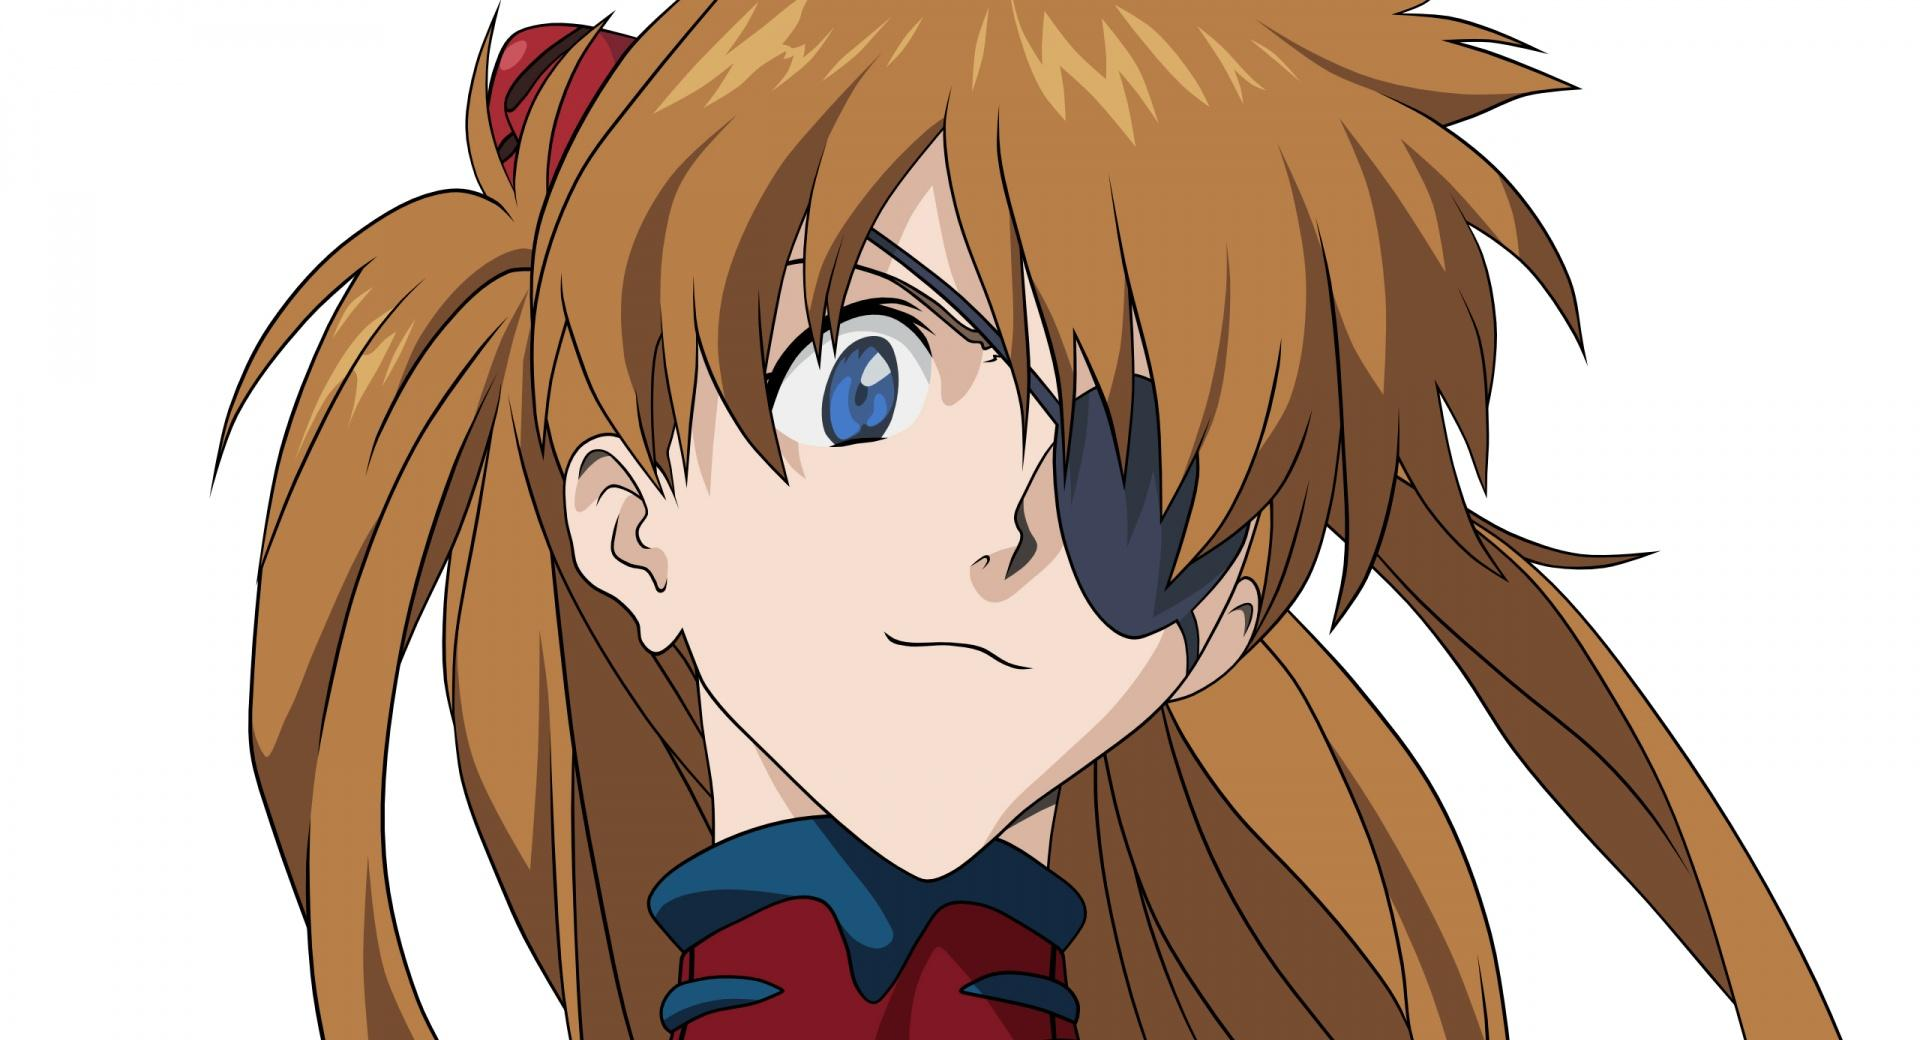 Neon Genesis Evangelion Asuka Langley Soryu wallpapers HD quality